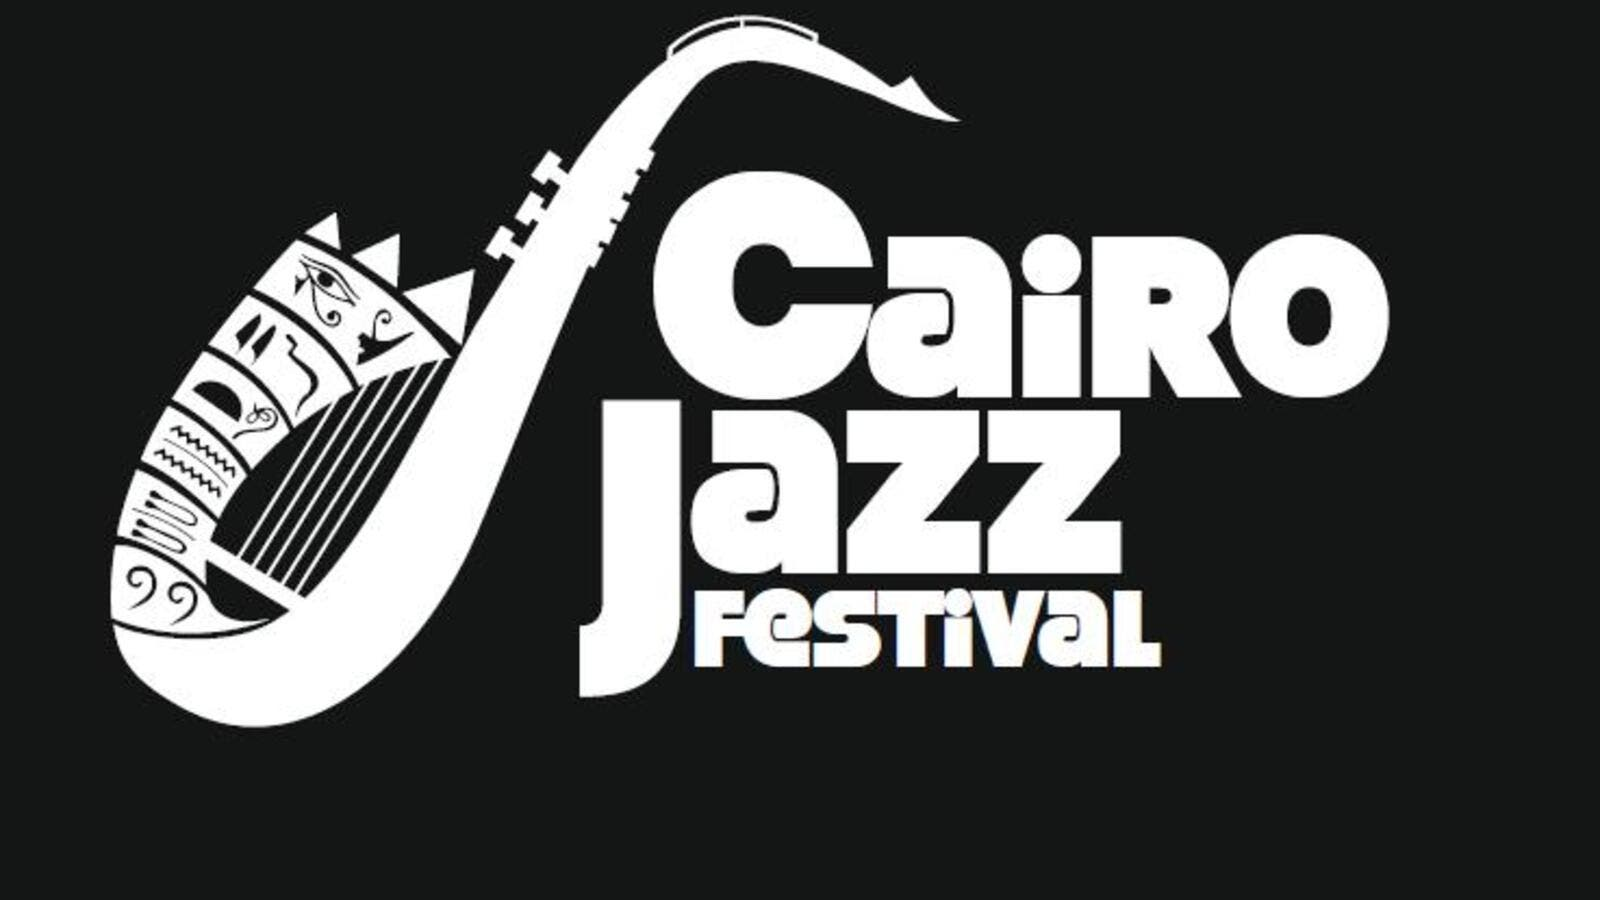 The 8th Cairo Jazz Festival brings three days of international and local music to the Cairene capital. (Facebook)